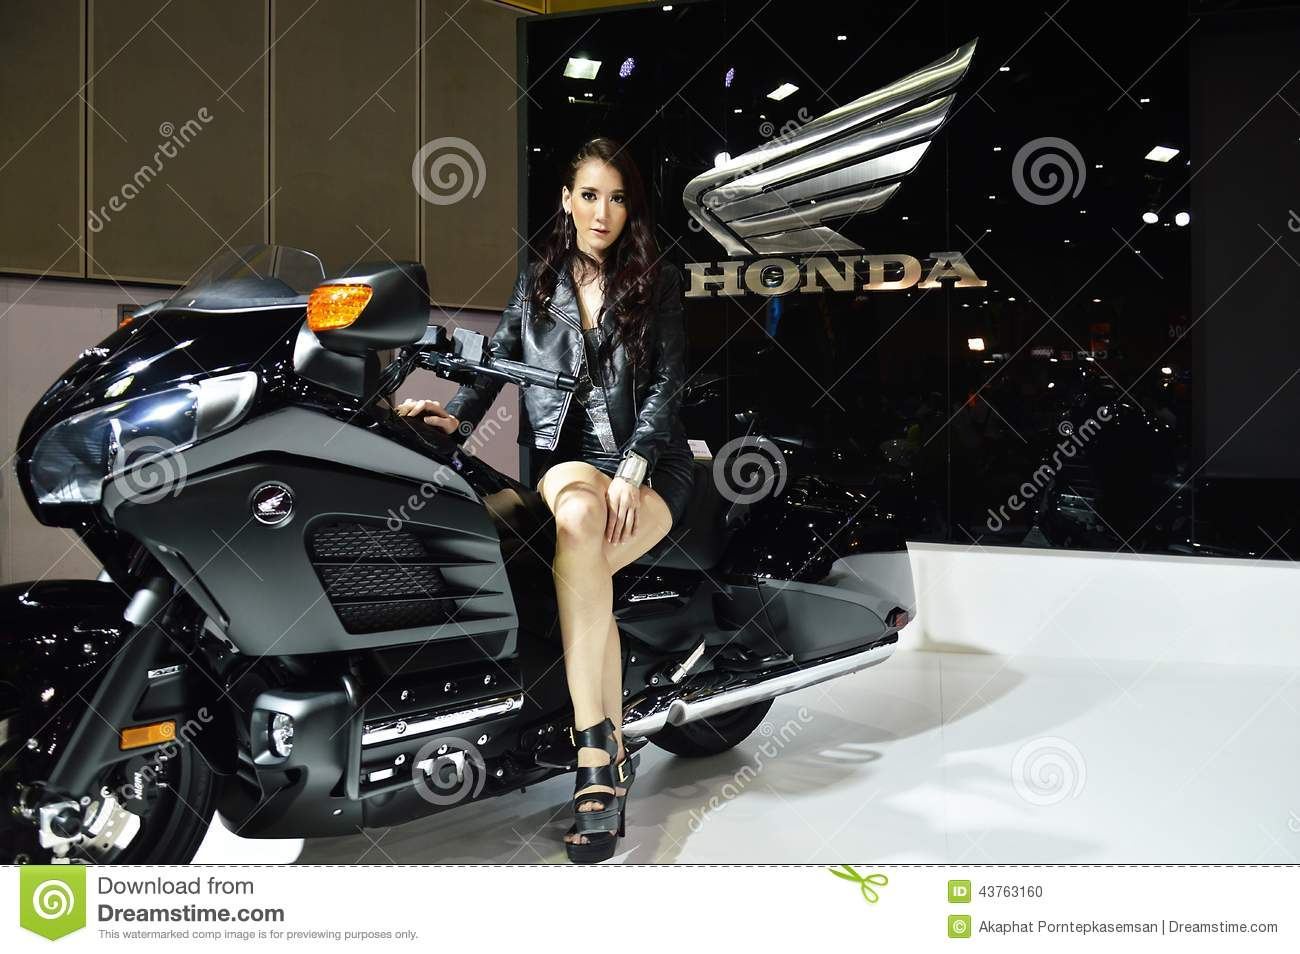 Model Presented Honda Big Bike Editorial Image Image 43763160